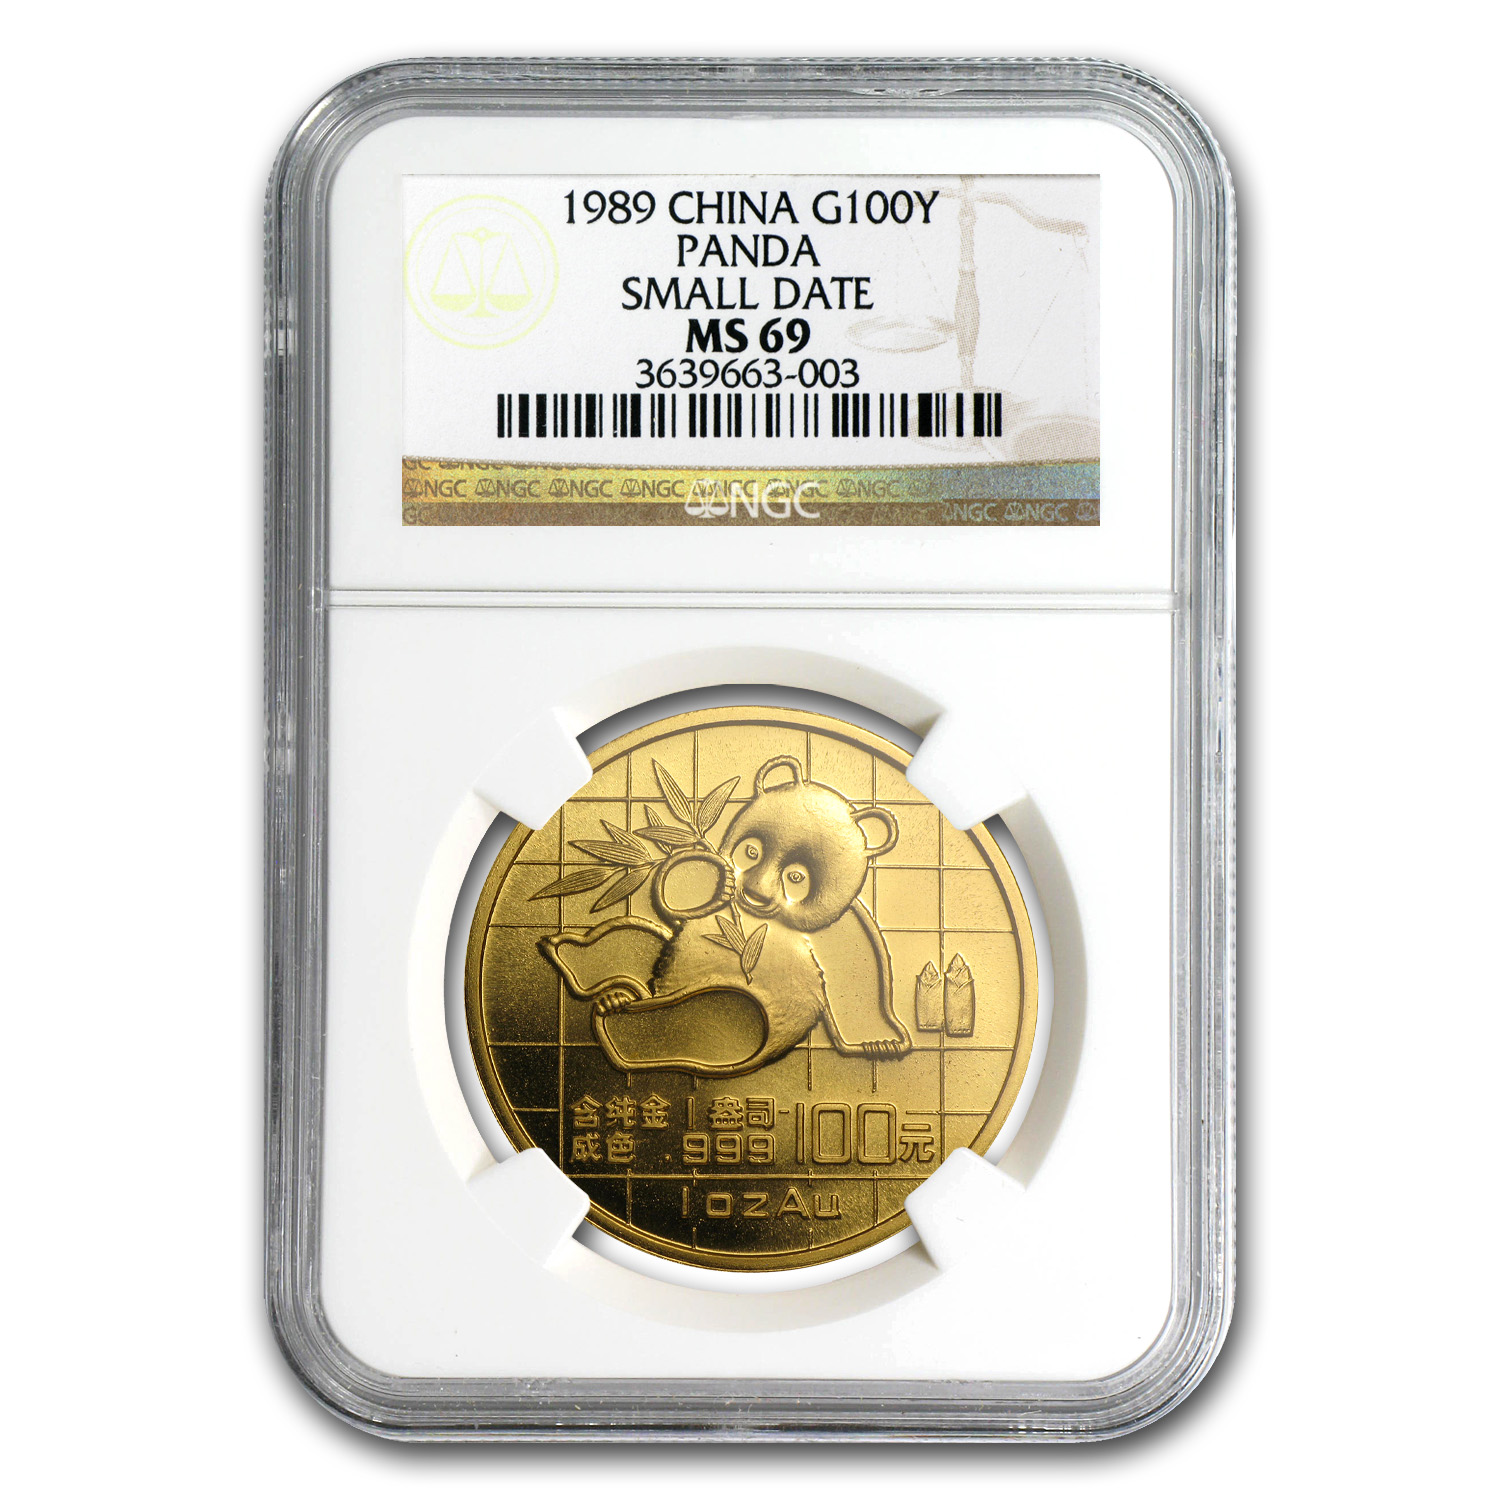 1989 China 1 oz Gold Panda Small Date MS-69 NGC